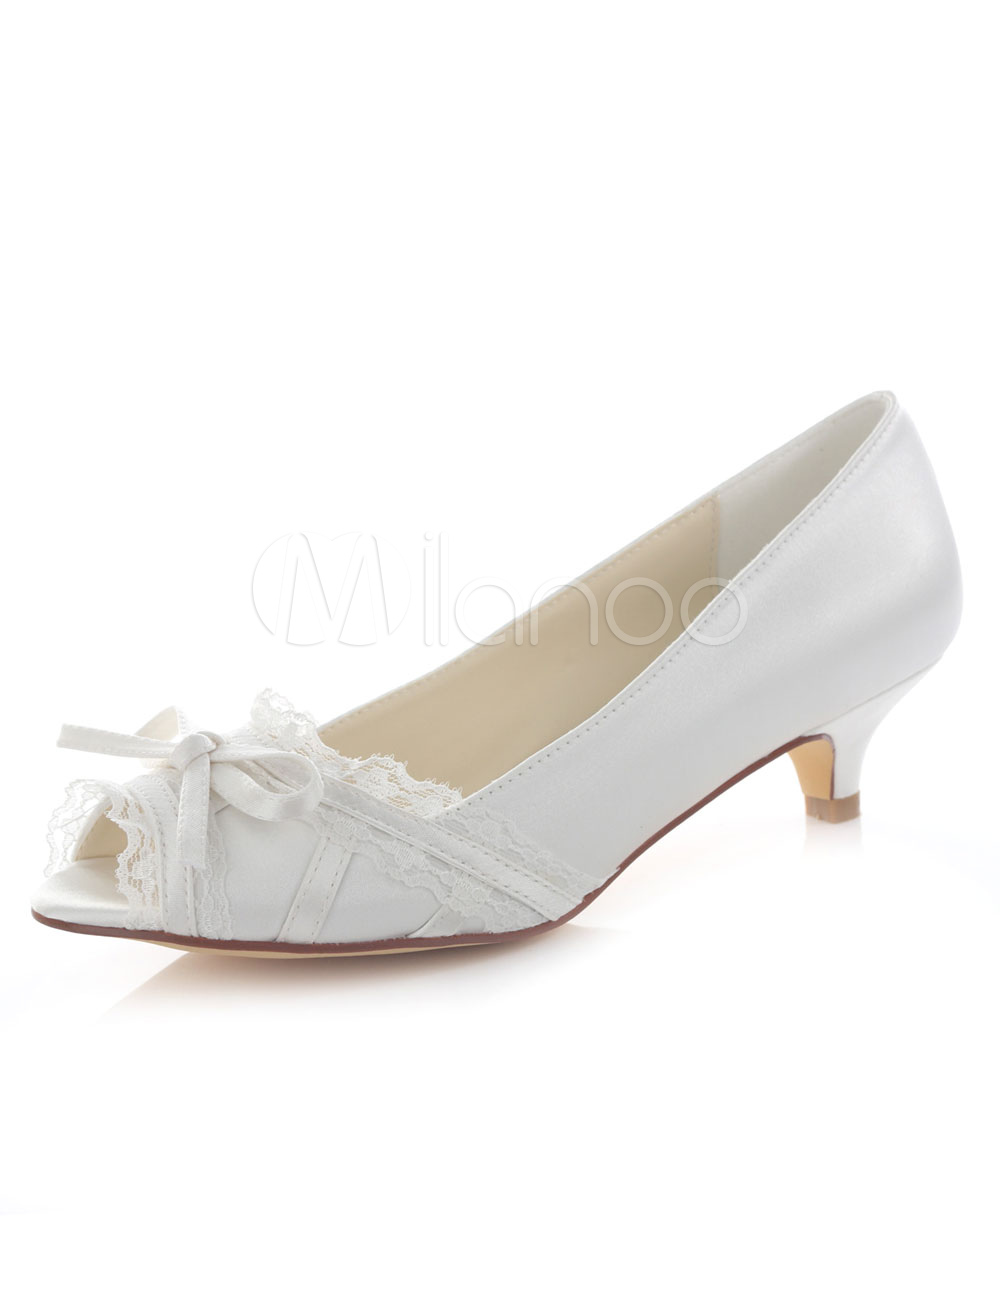 Ivory Wedding Shoes Women's Lace Bow Peep Toe Slip On Kitten Heel Pumps